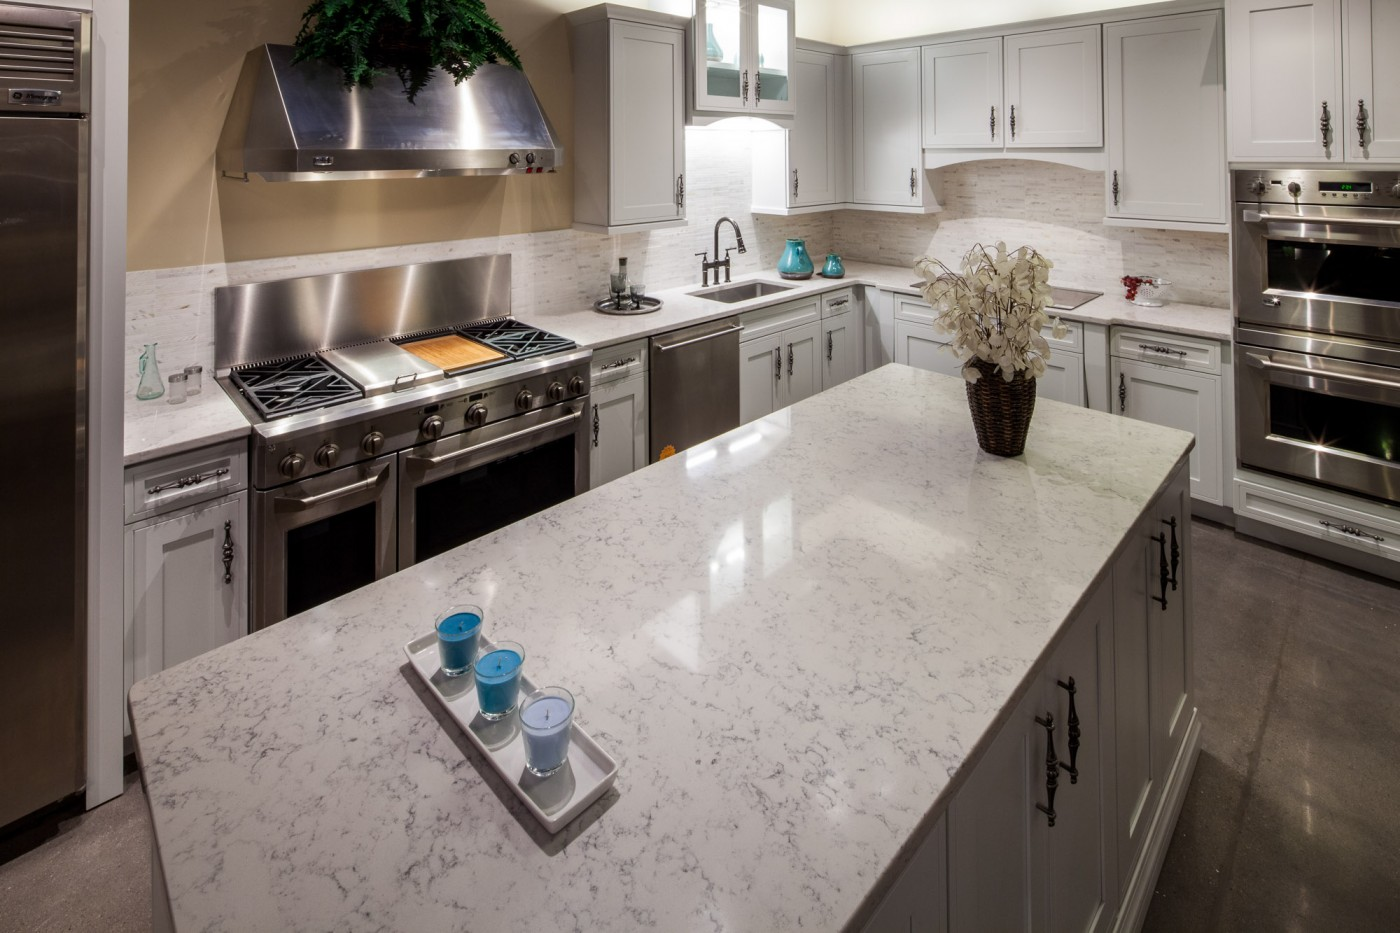 Silestone Quartz Countertops For Kitchens : Marble and granite countertops ma quartz